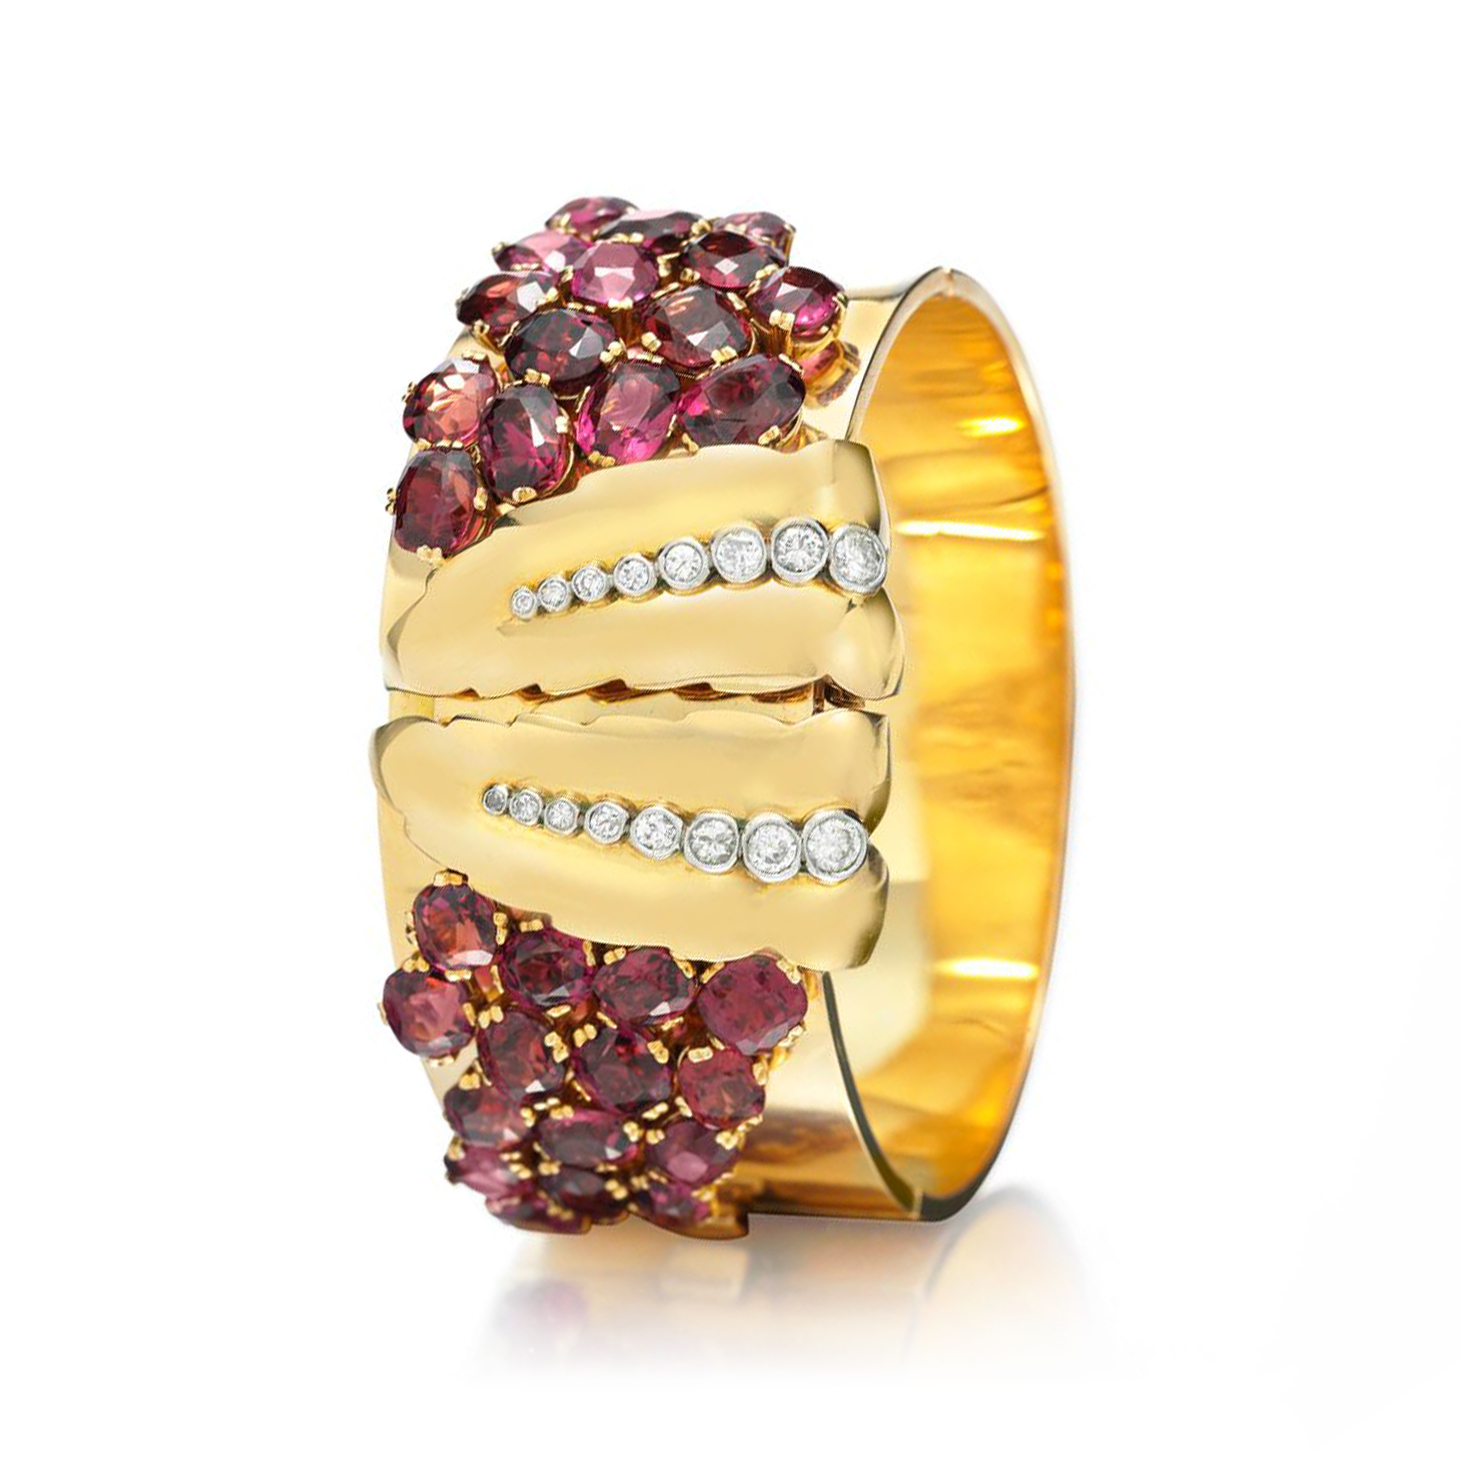 A Rare Retro Tourmaline and Diamond Cuff Bracelet, by Bulgari, circa 1935